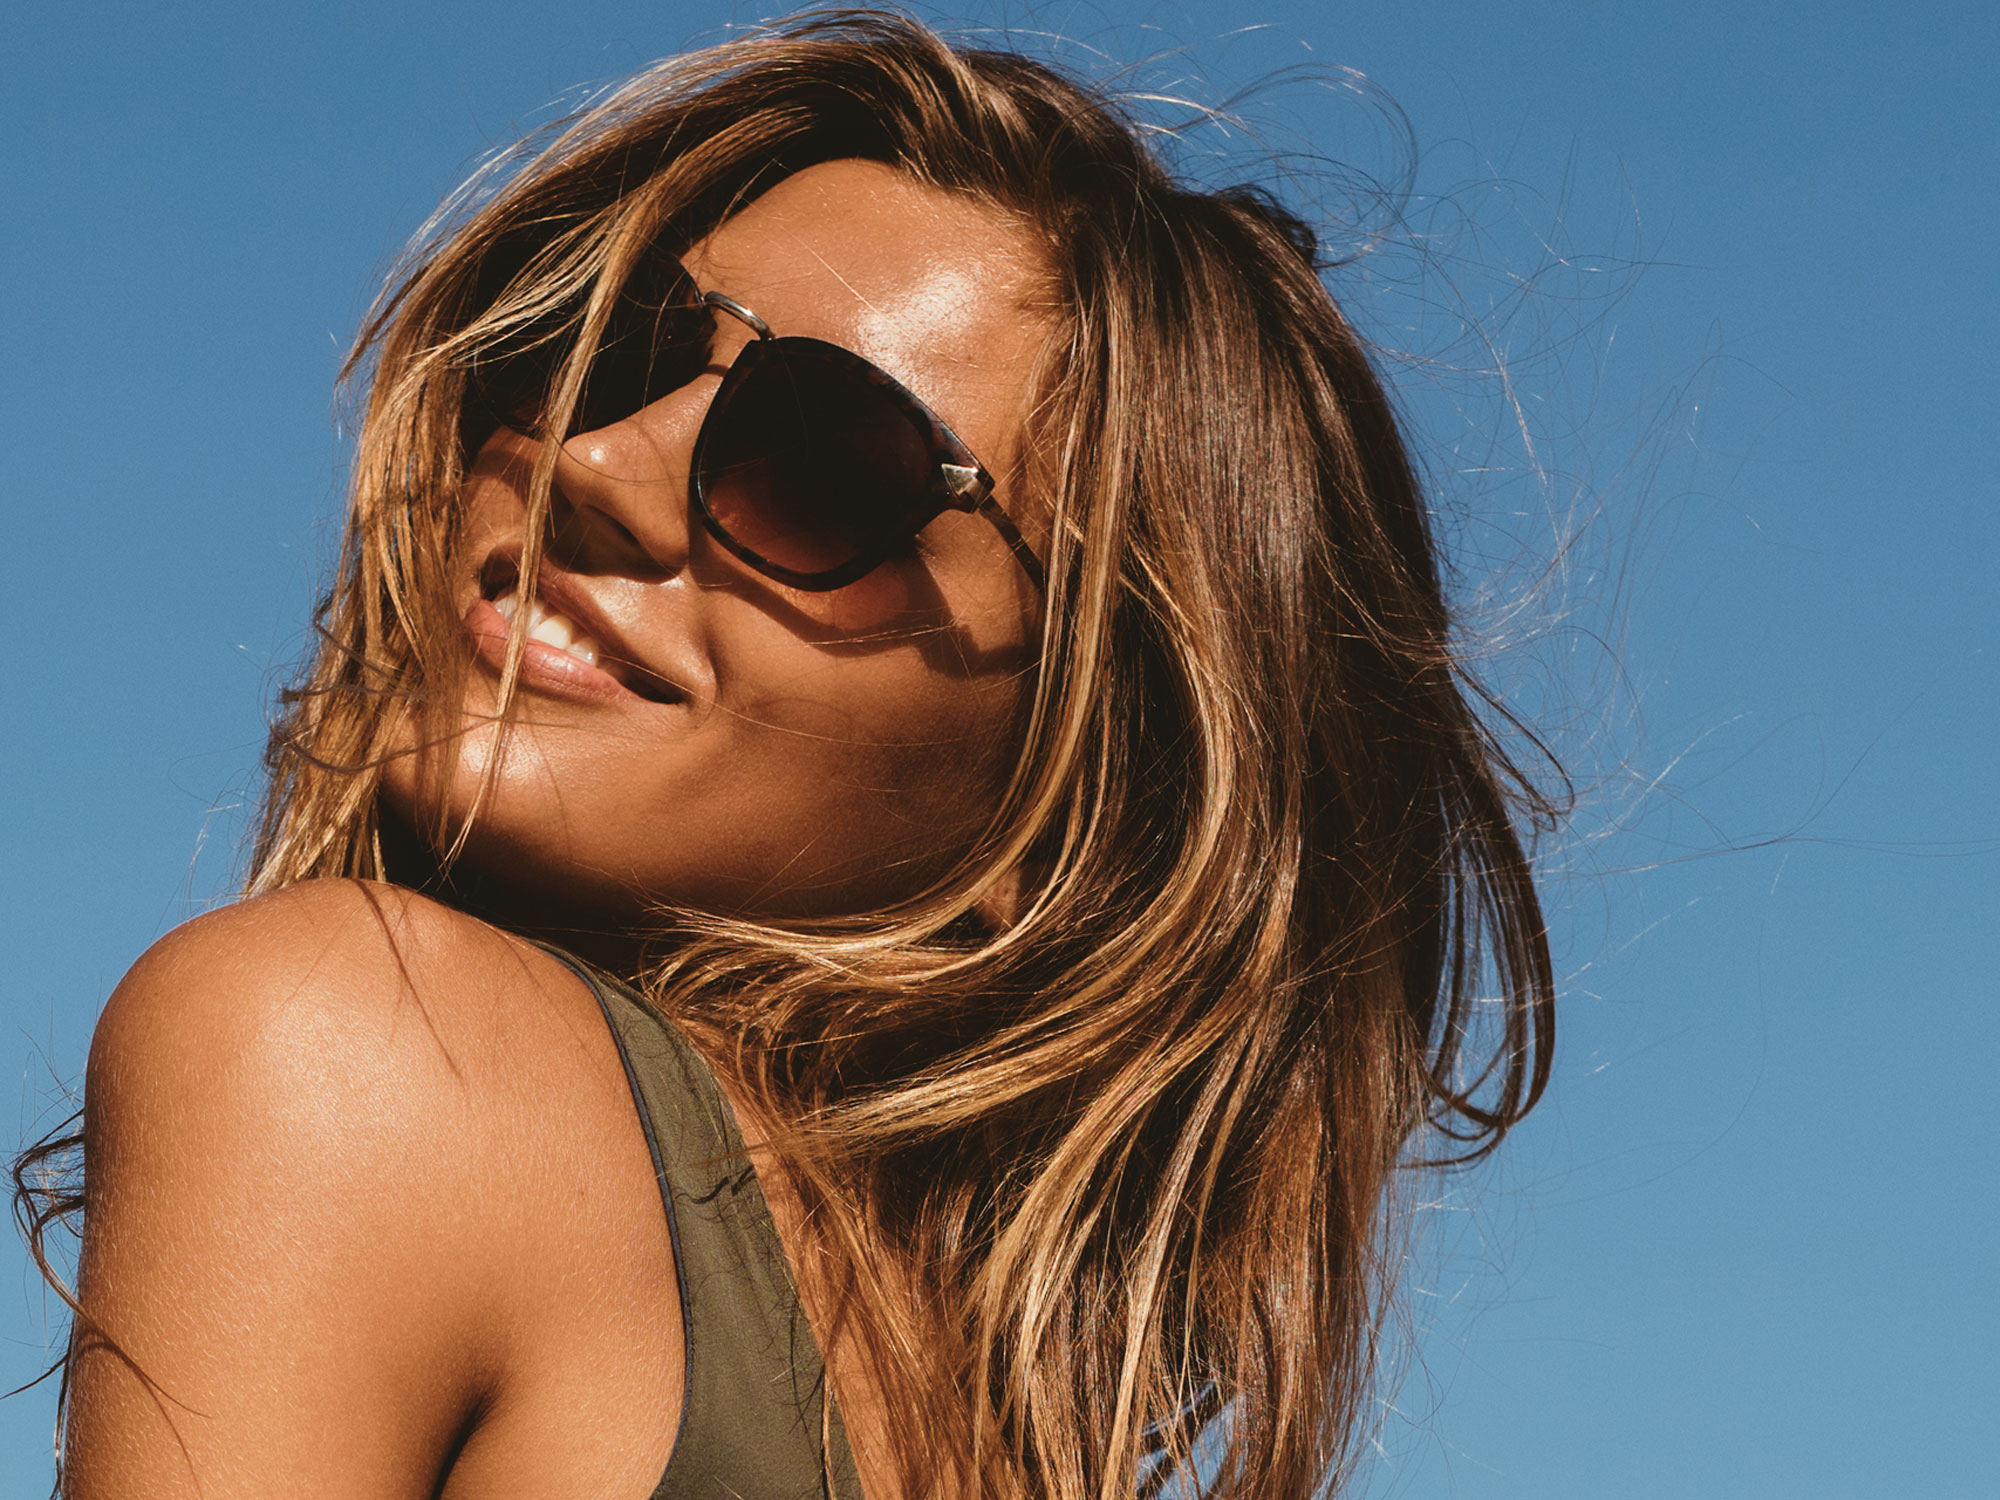 fashion - The Aspect Eyewear Fashion range showcases the latest looks from around the globe emulating designer detailing, offering colour treatments and frame finishing, bringing to the market sunglasses of premium quality at an affordable price.